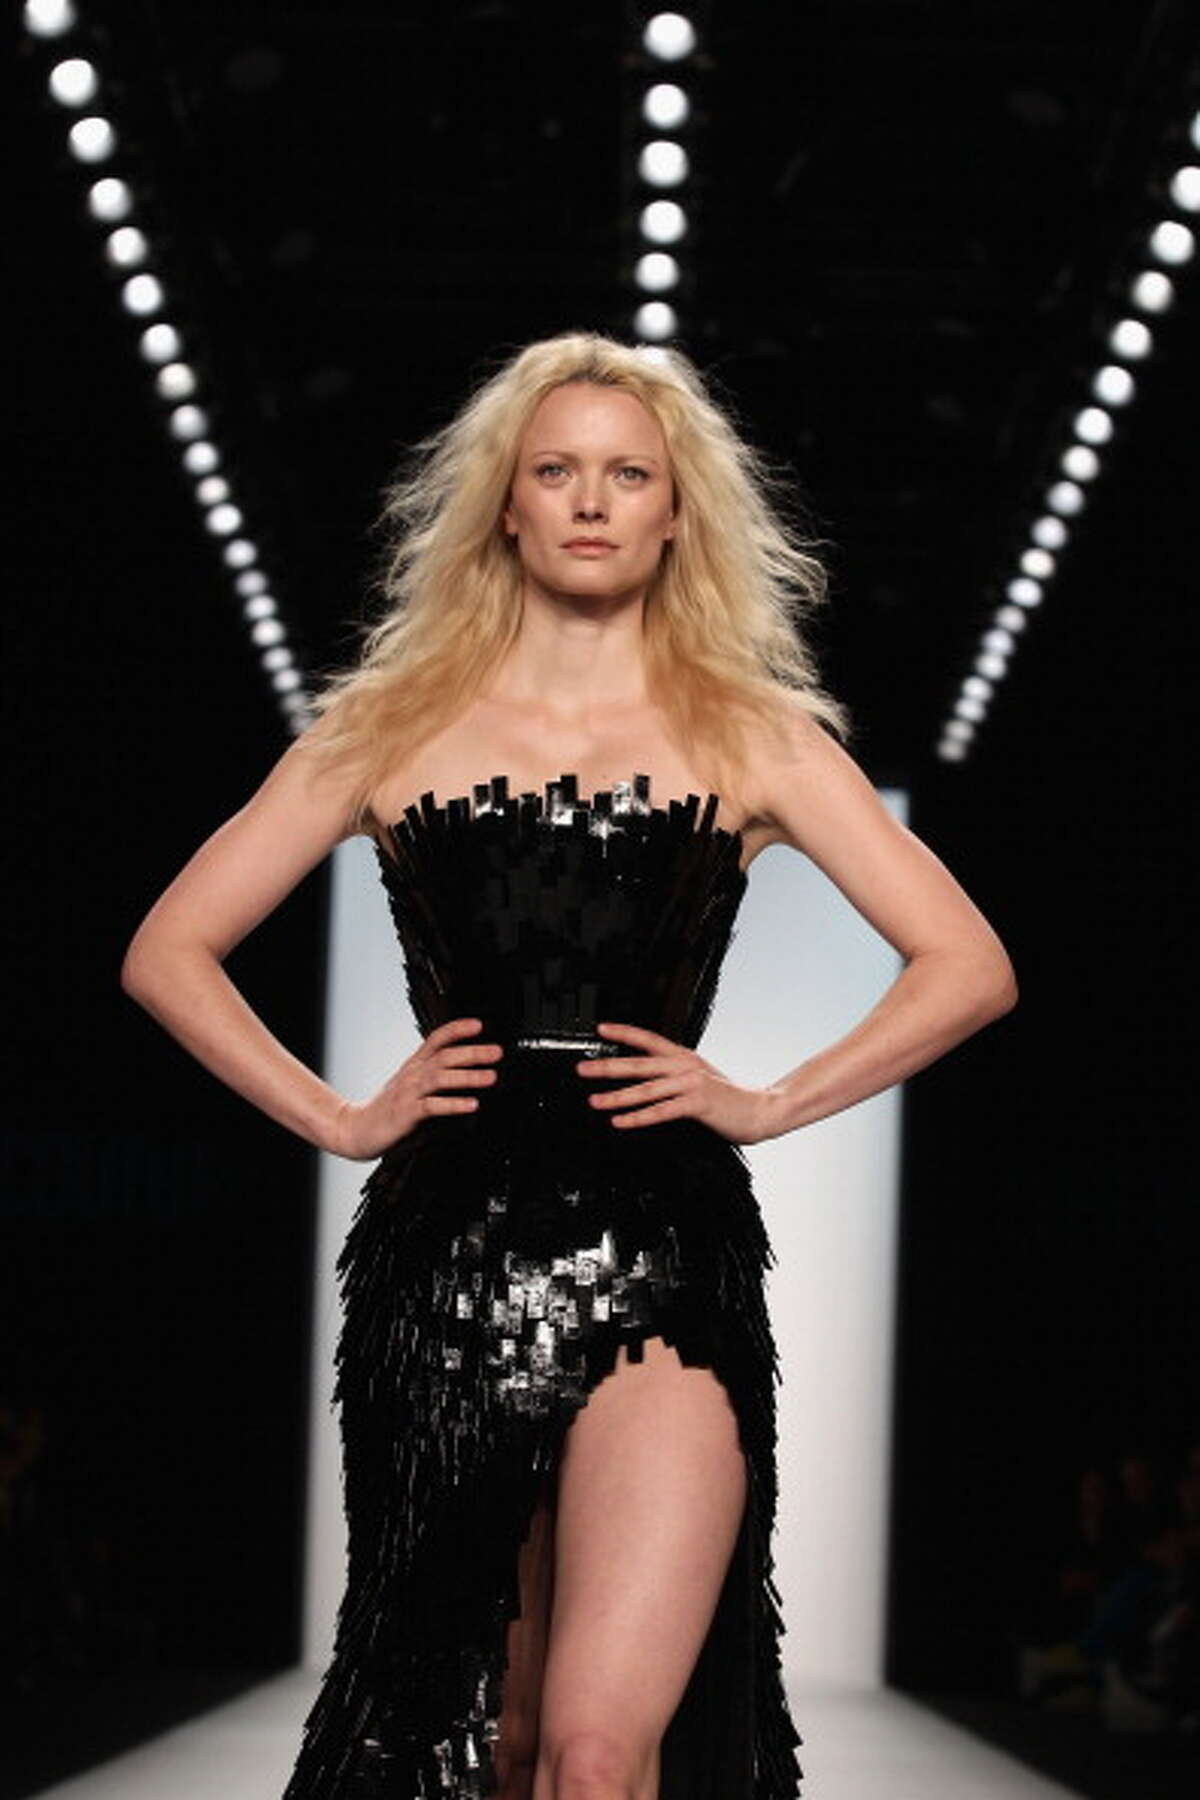 BERLIN, GERMANY - JANUARY 19: Model Franziska Knuppe walks the runway at the Le Ver Couture Show during the Mercedes Benz Fashion Week Autumn/Winter 2011 at Bebelplatz on January 19, 2011 in Berlin, Germany. (Photo by Andreas Rentz/Getty Images)